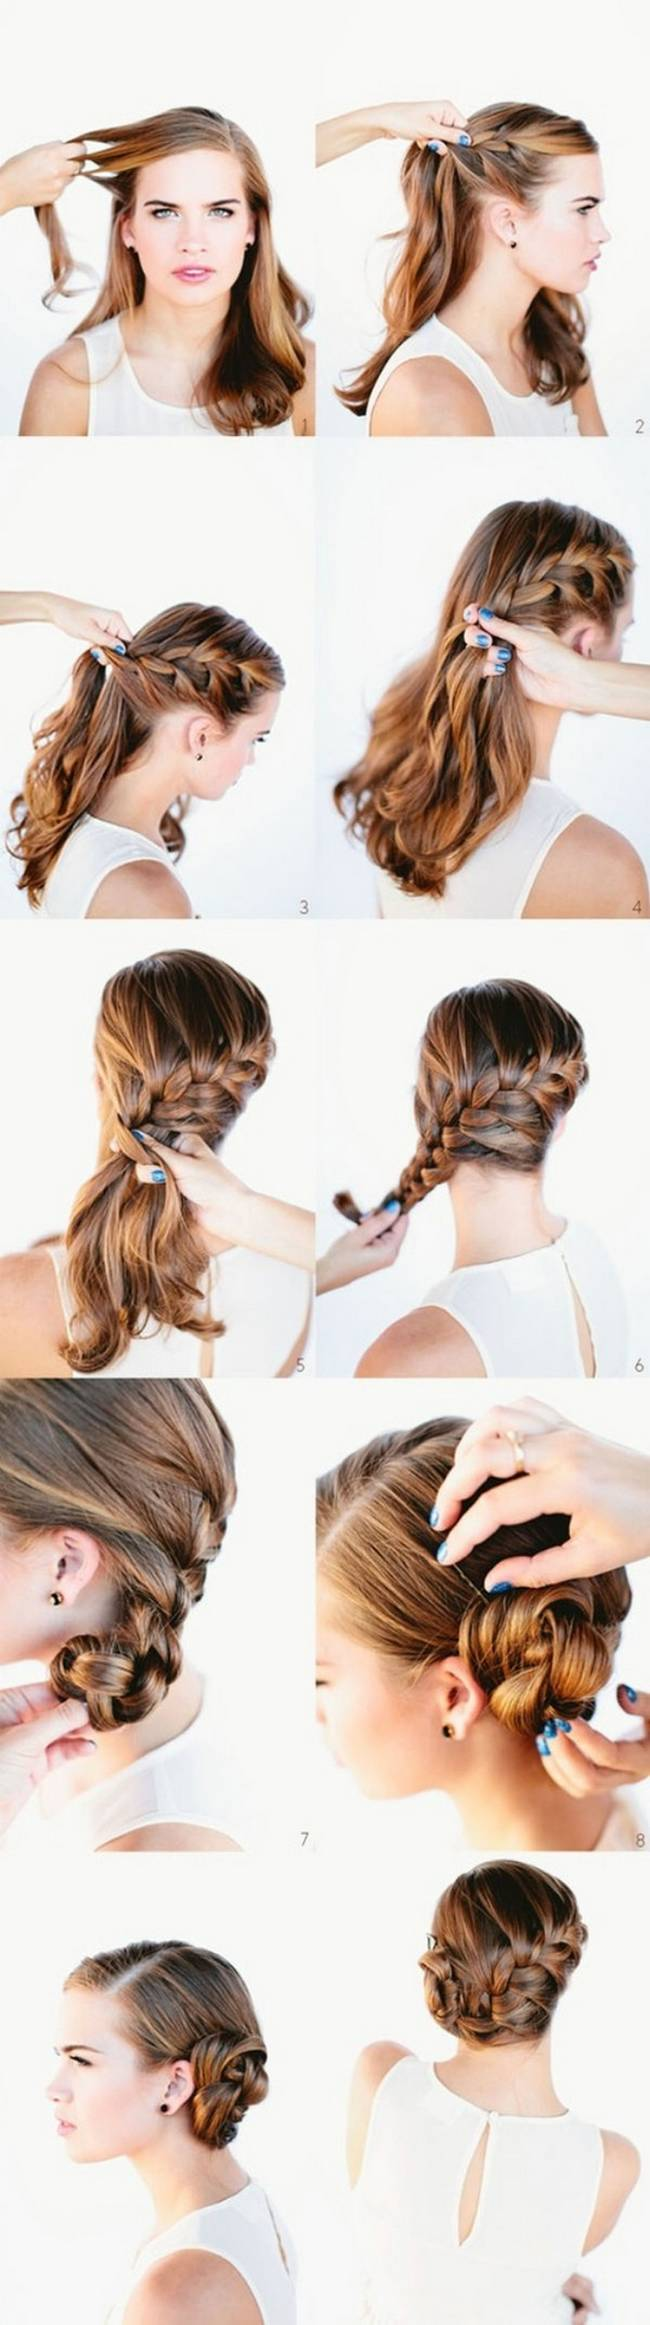 Prime Deceptive Bun Hairstyles 10 Easier Than They Look Buns Hairstyles For Women Draintrainus